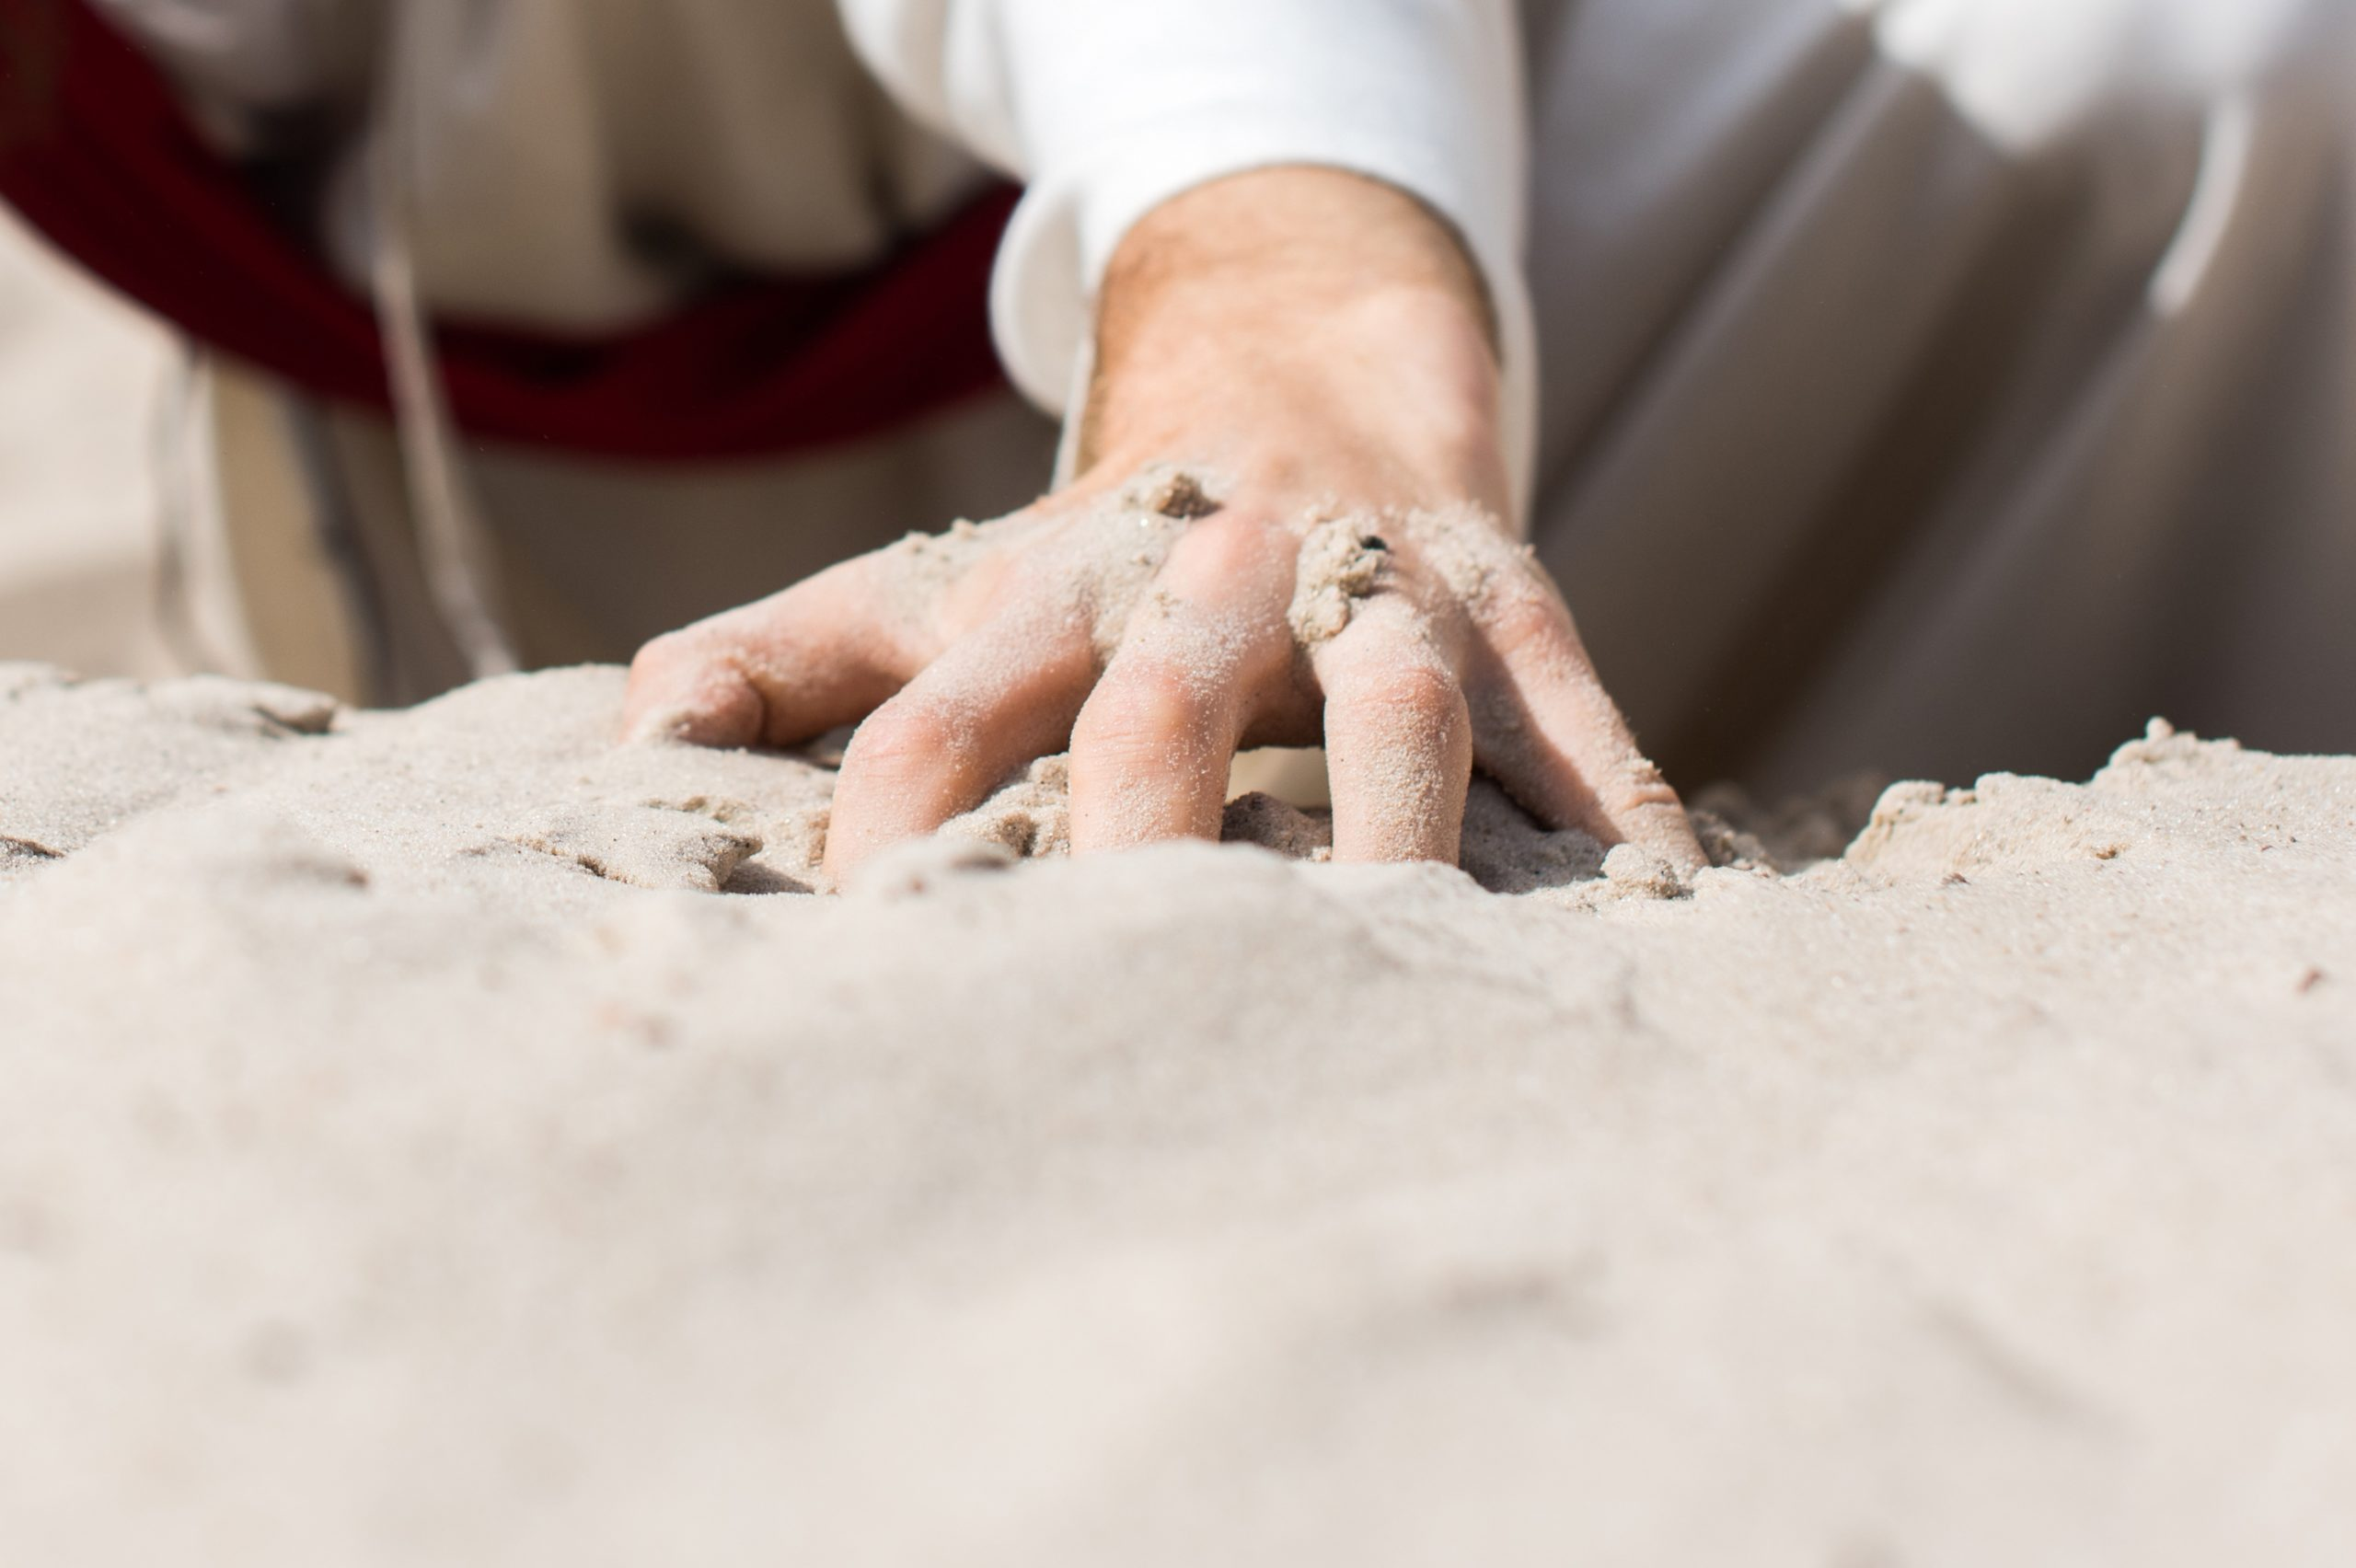 Why did Jesus write in the sand?